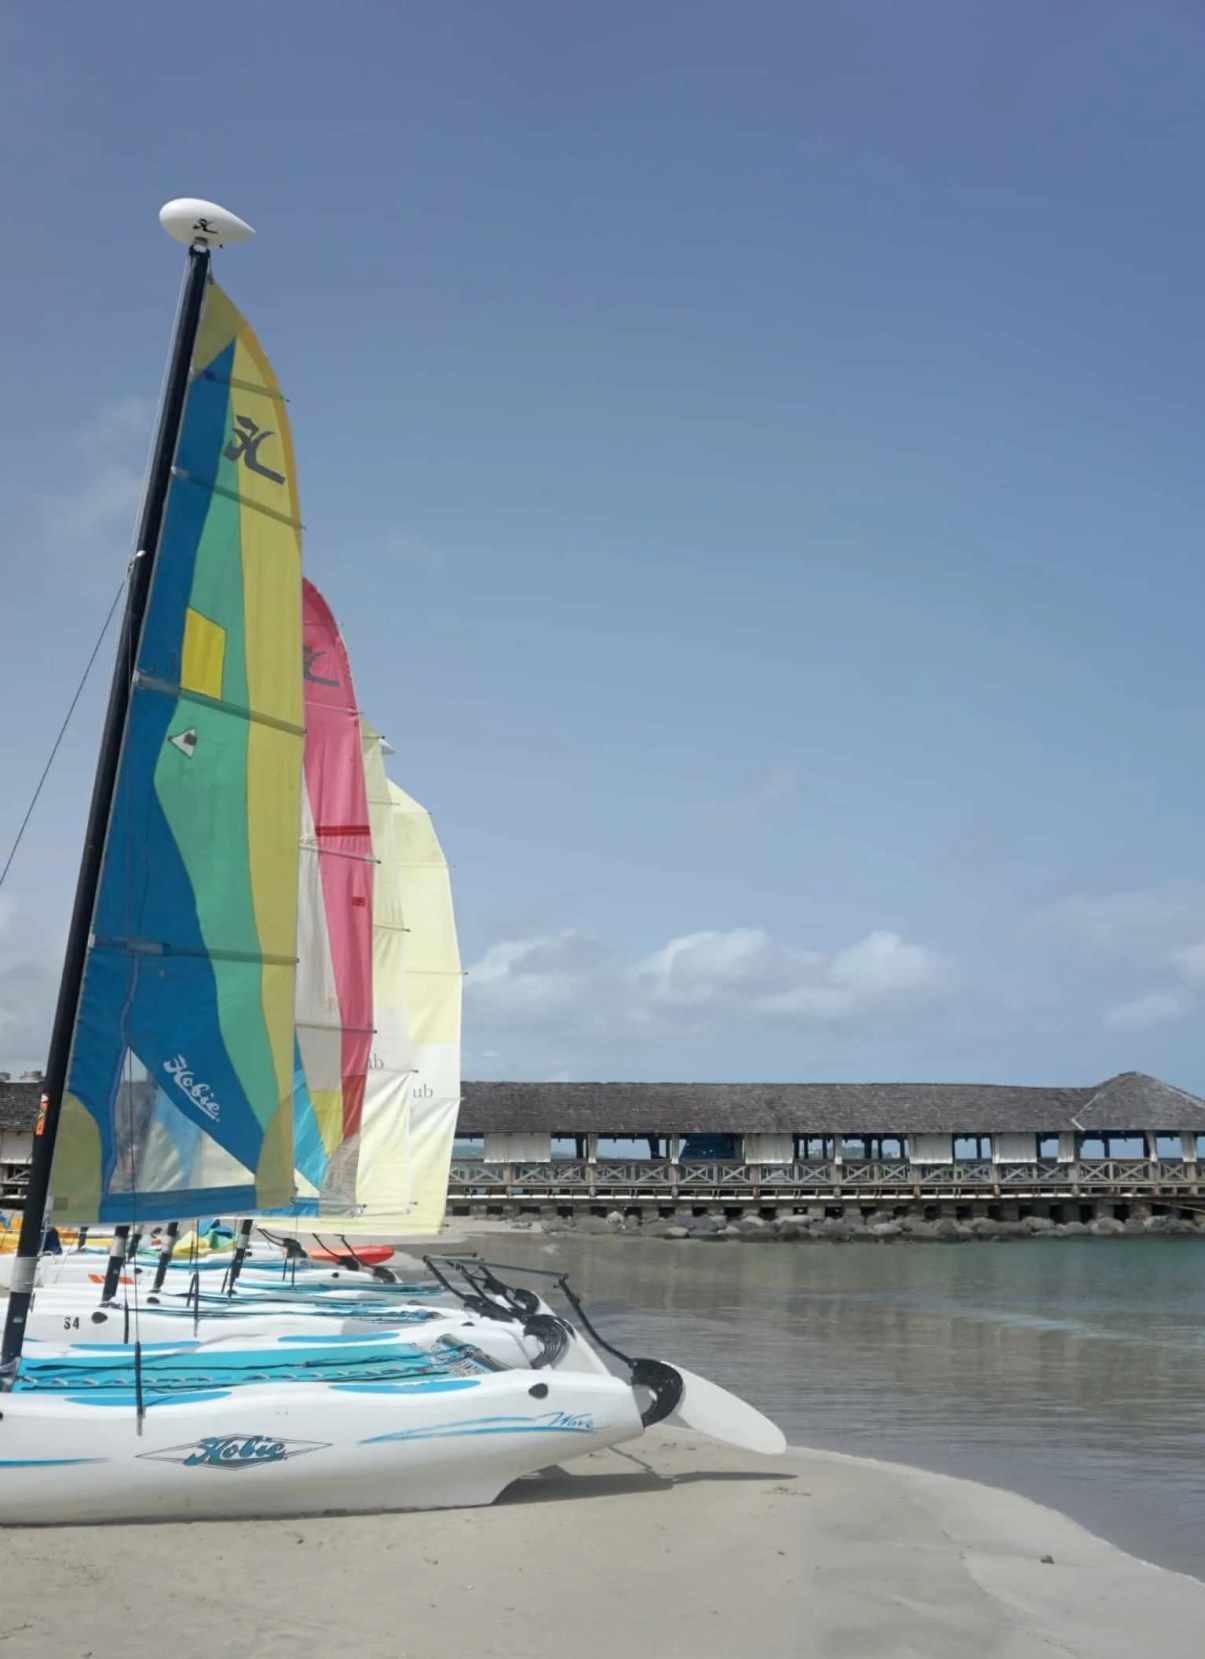 What Water sports are included at St James Club www.extraordinarychaos.com